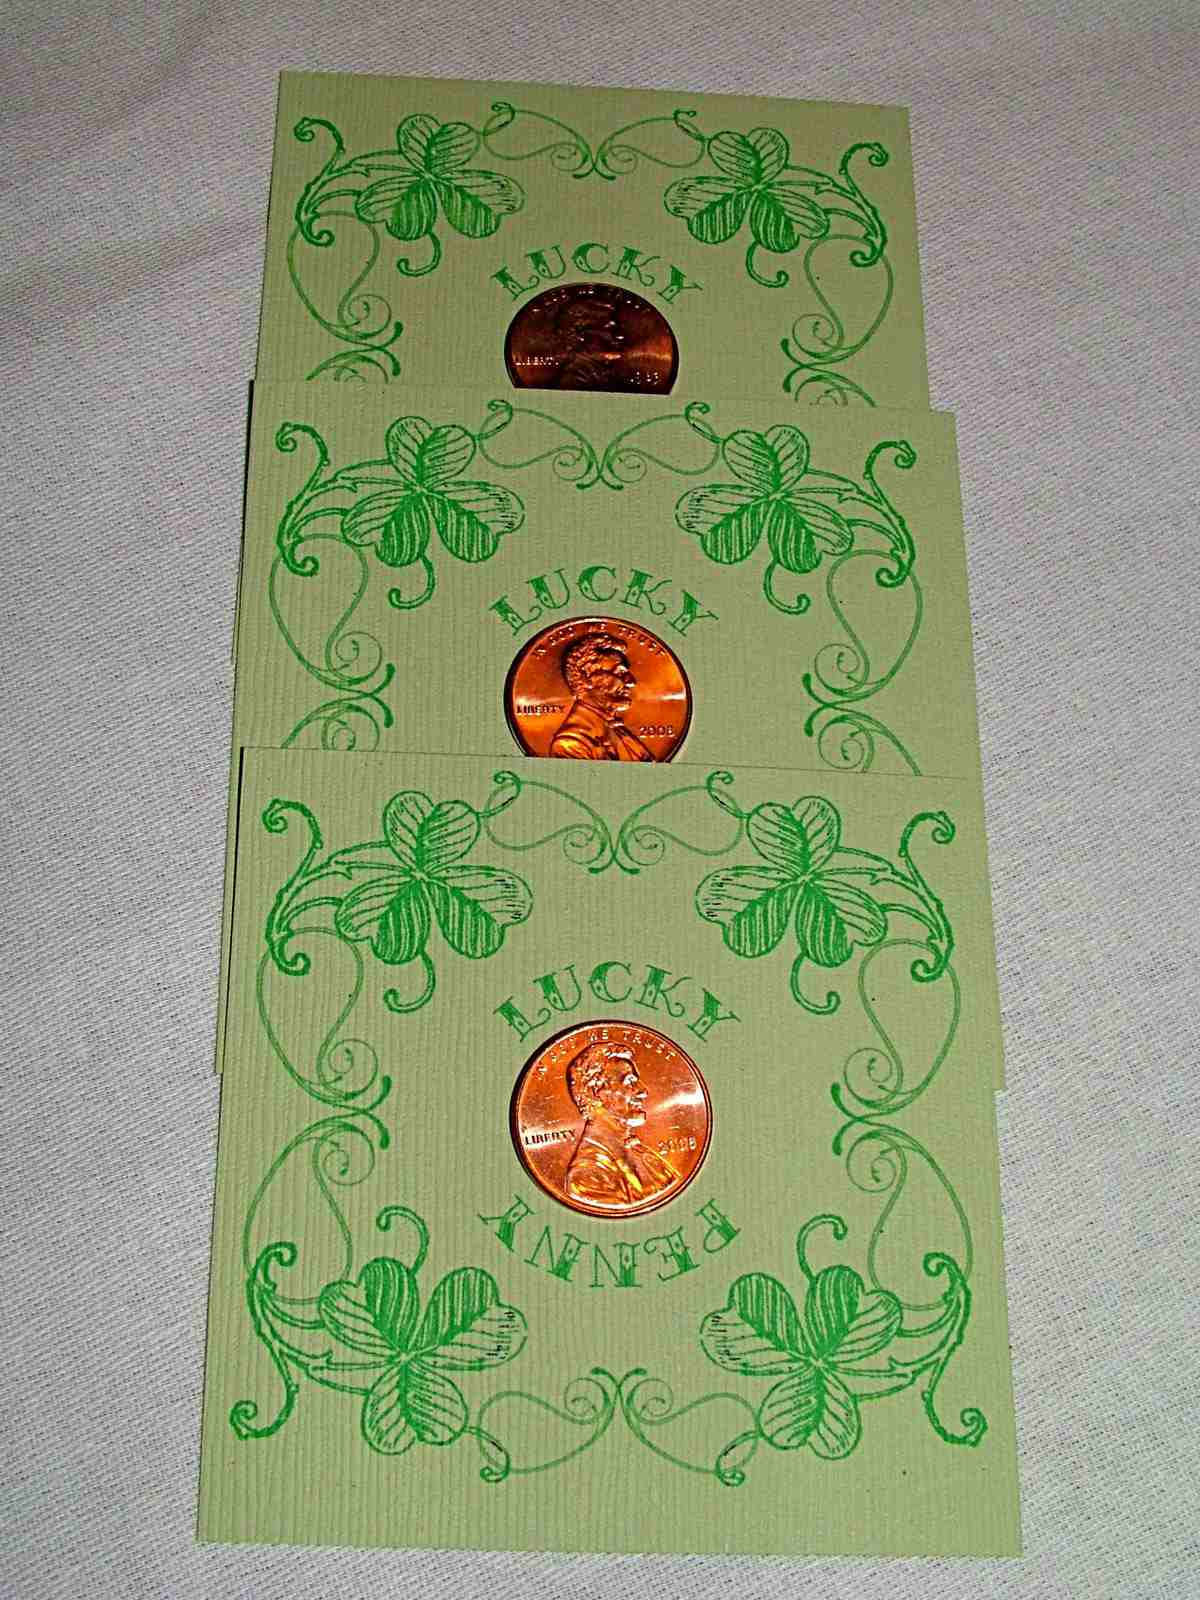 A St. Patrick's Day card with a penny stuck in the center.